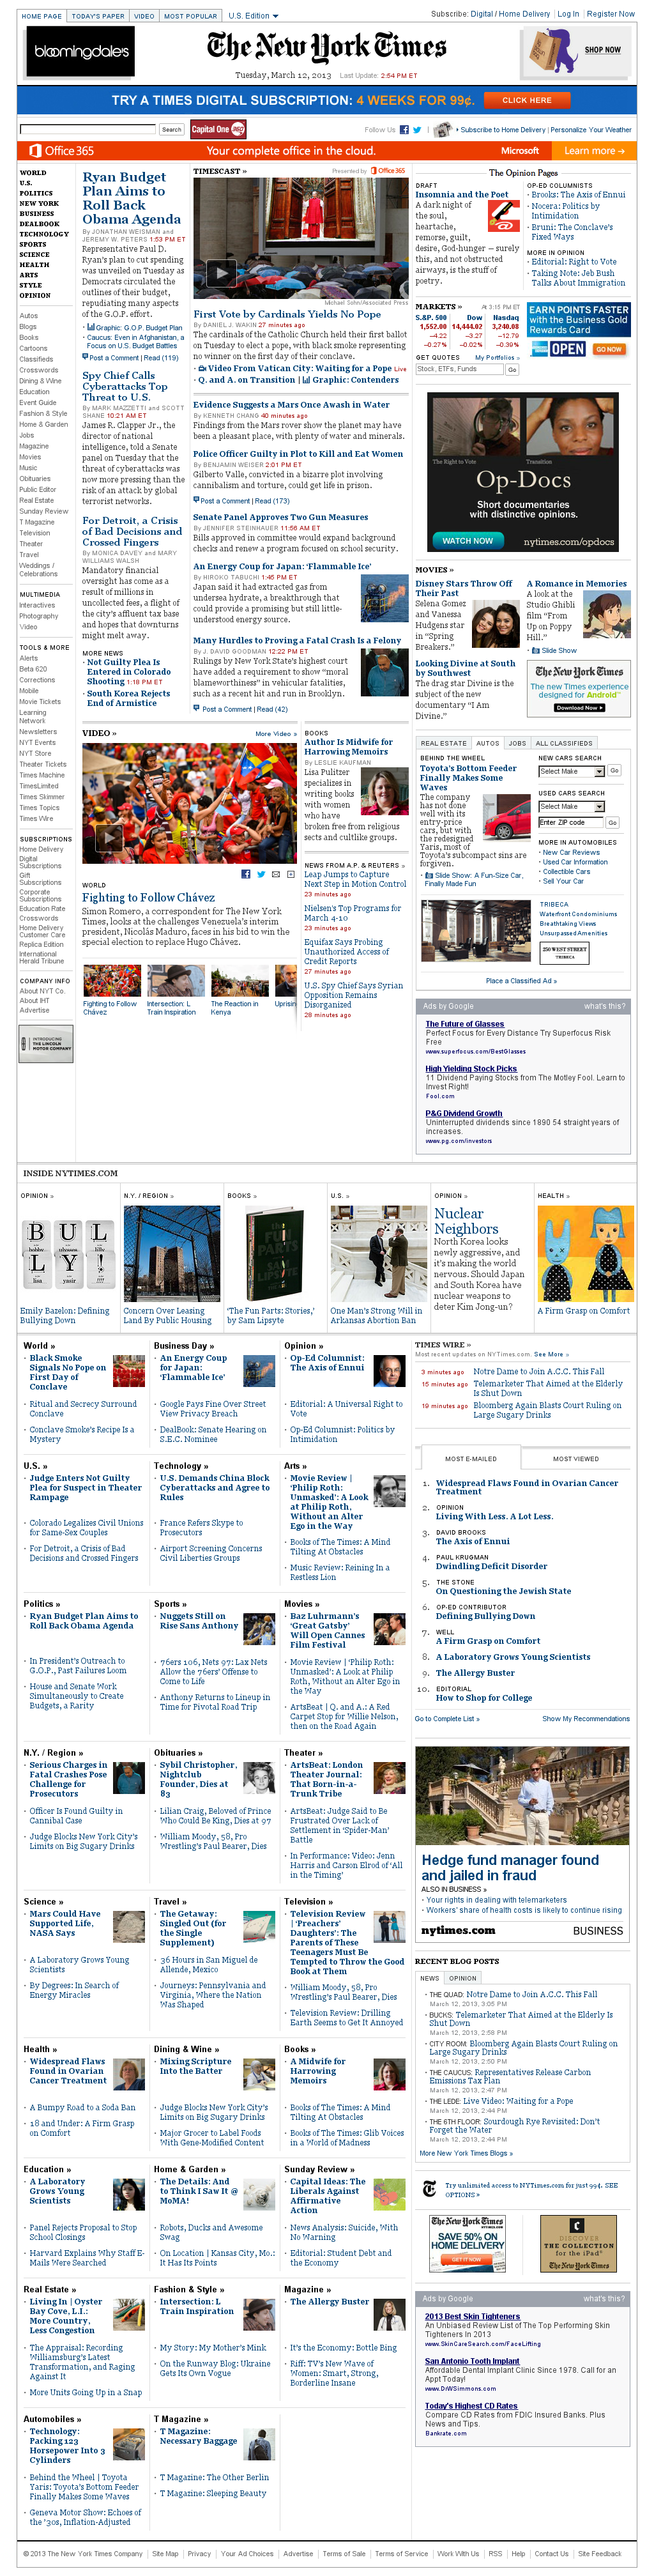 The New York Times at Tuesday March 12, 2013, 7:15 p.m. UTC